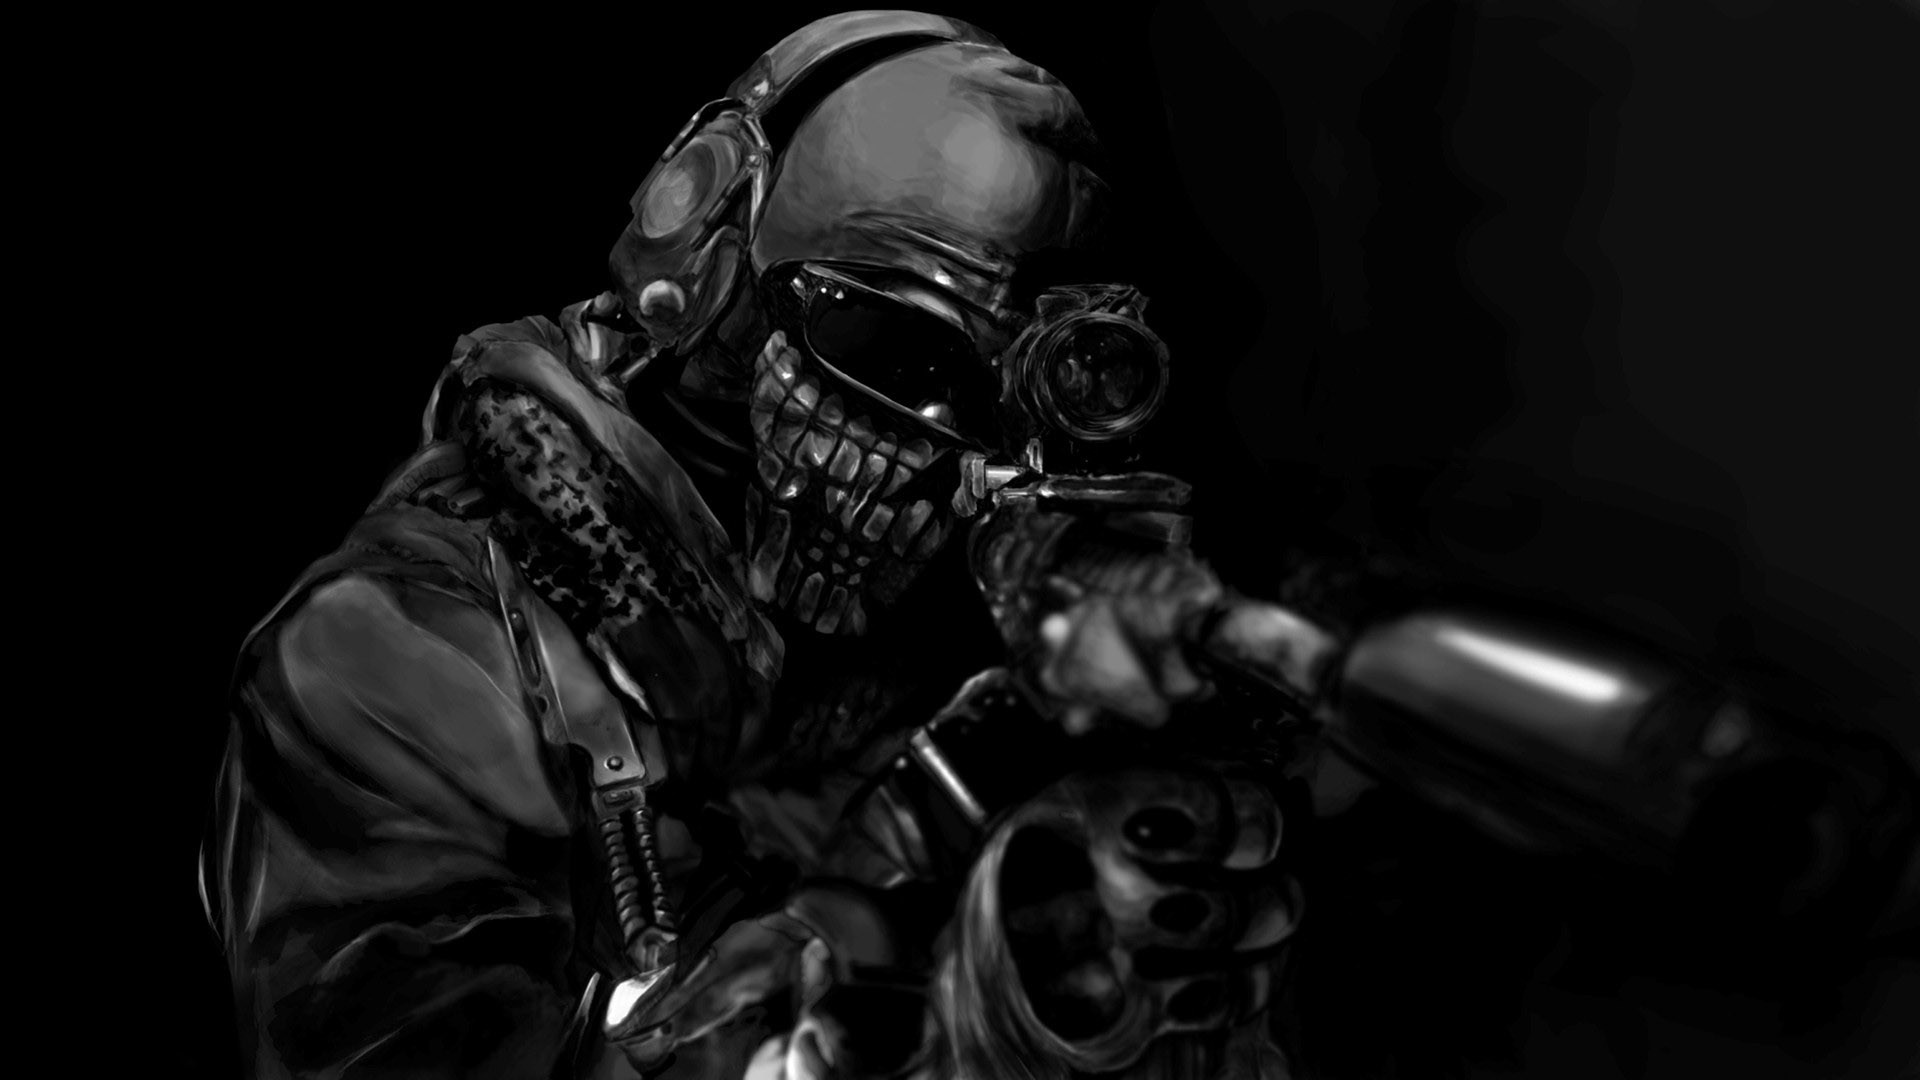 Call Of Duty Wallpaper Hd: Call Of Duty Wallpapers High Quality